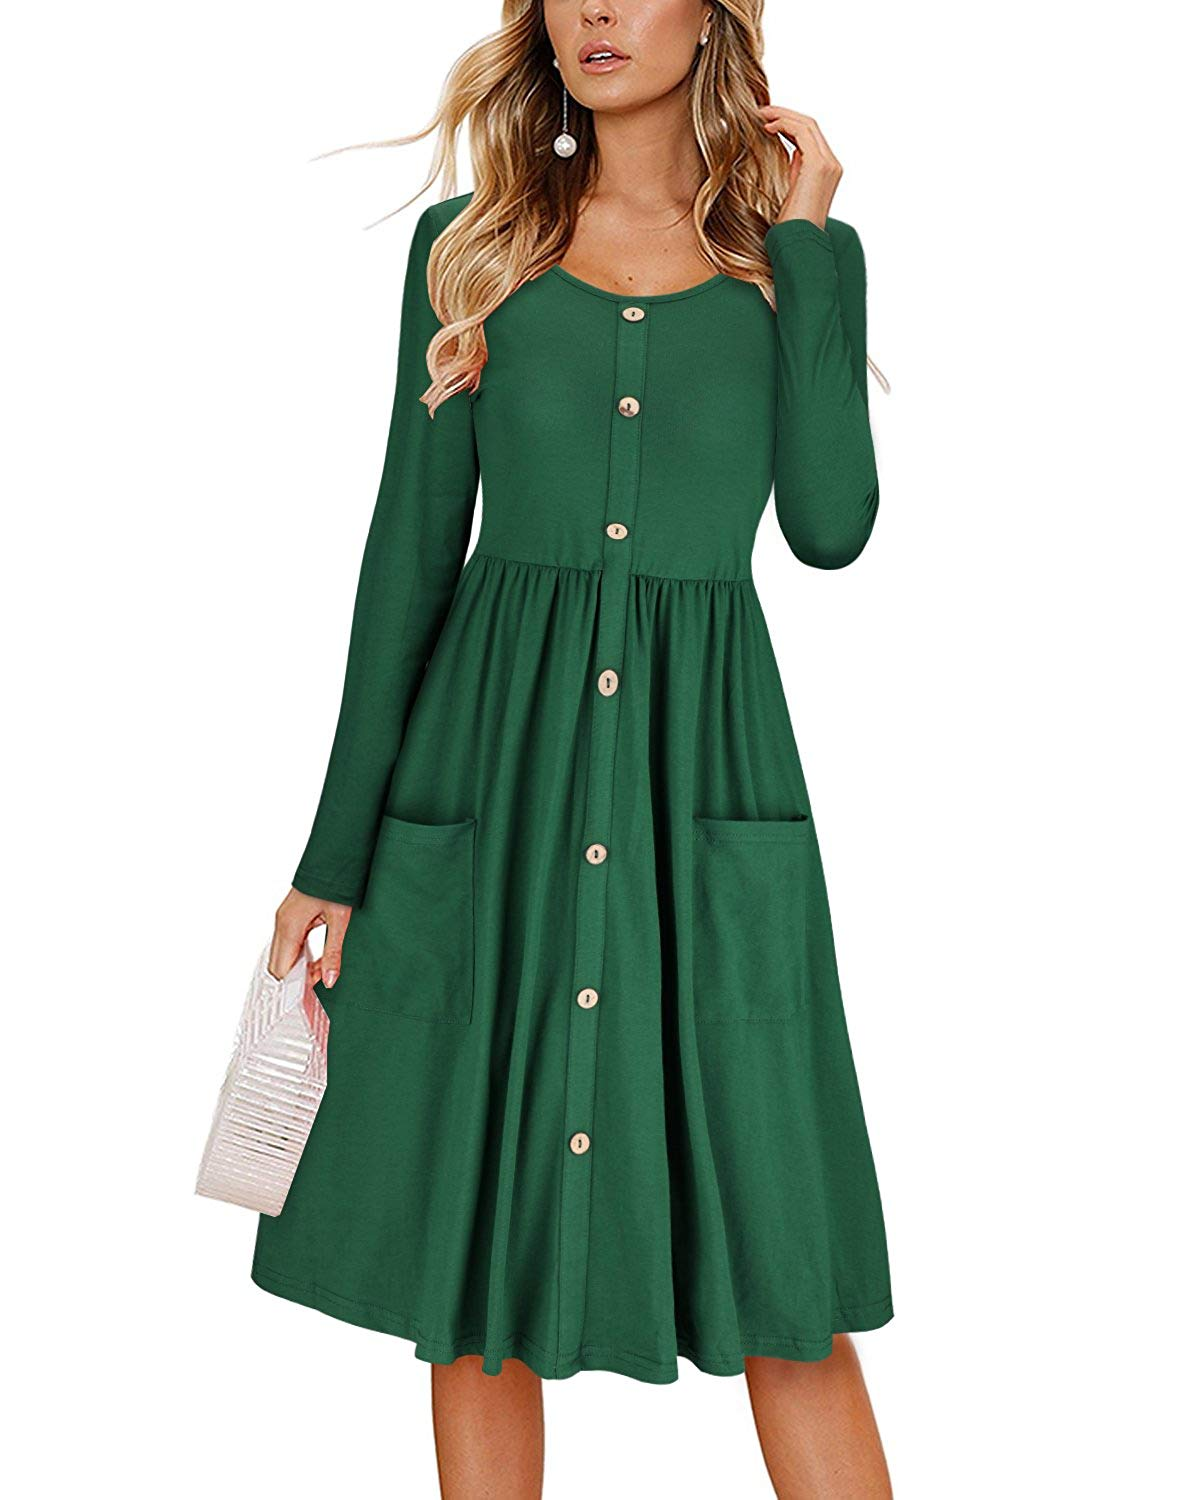 DAILYHAUTE Women's dress HUNTER GREEN / S Haute Edition Women's Long Sleeve Button Down Dress with Pockets